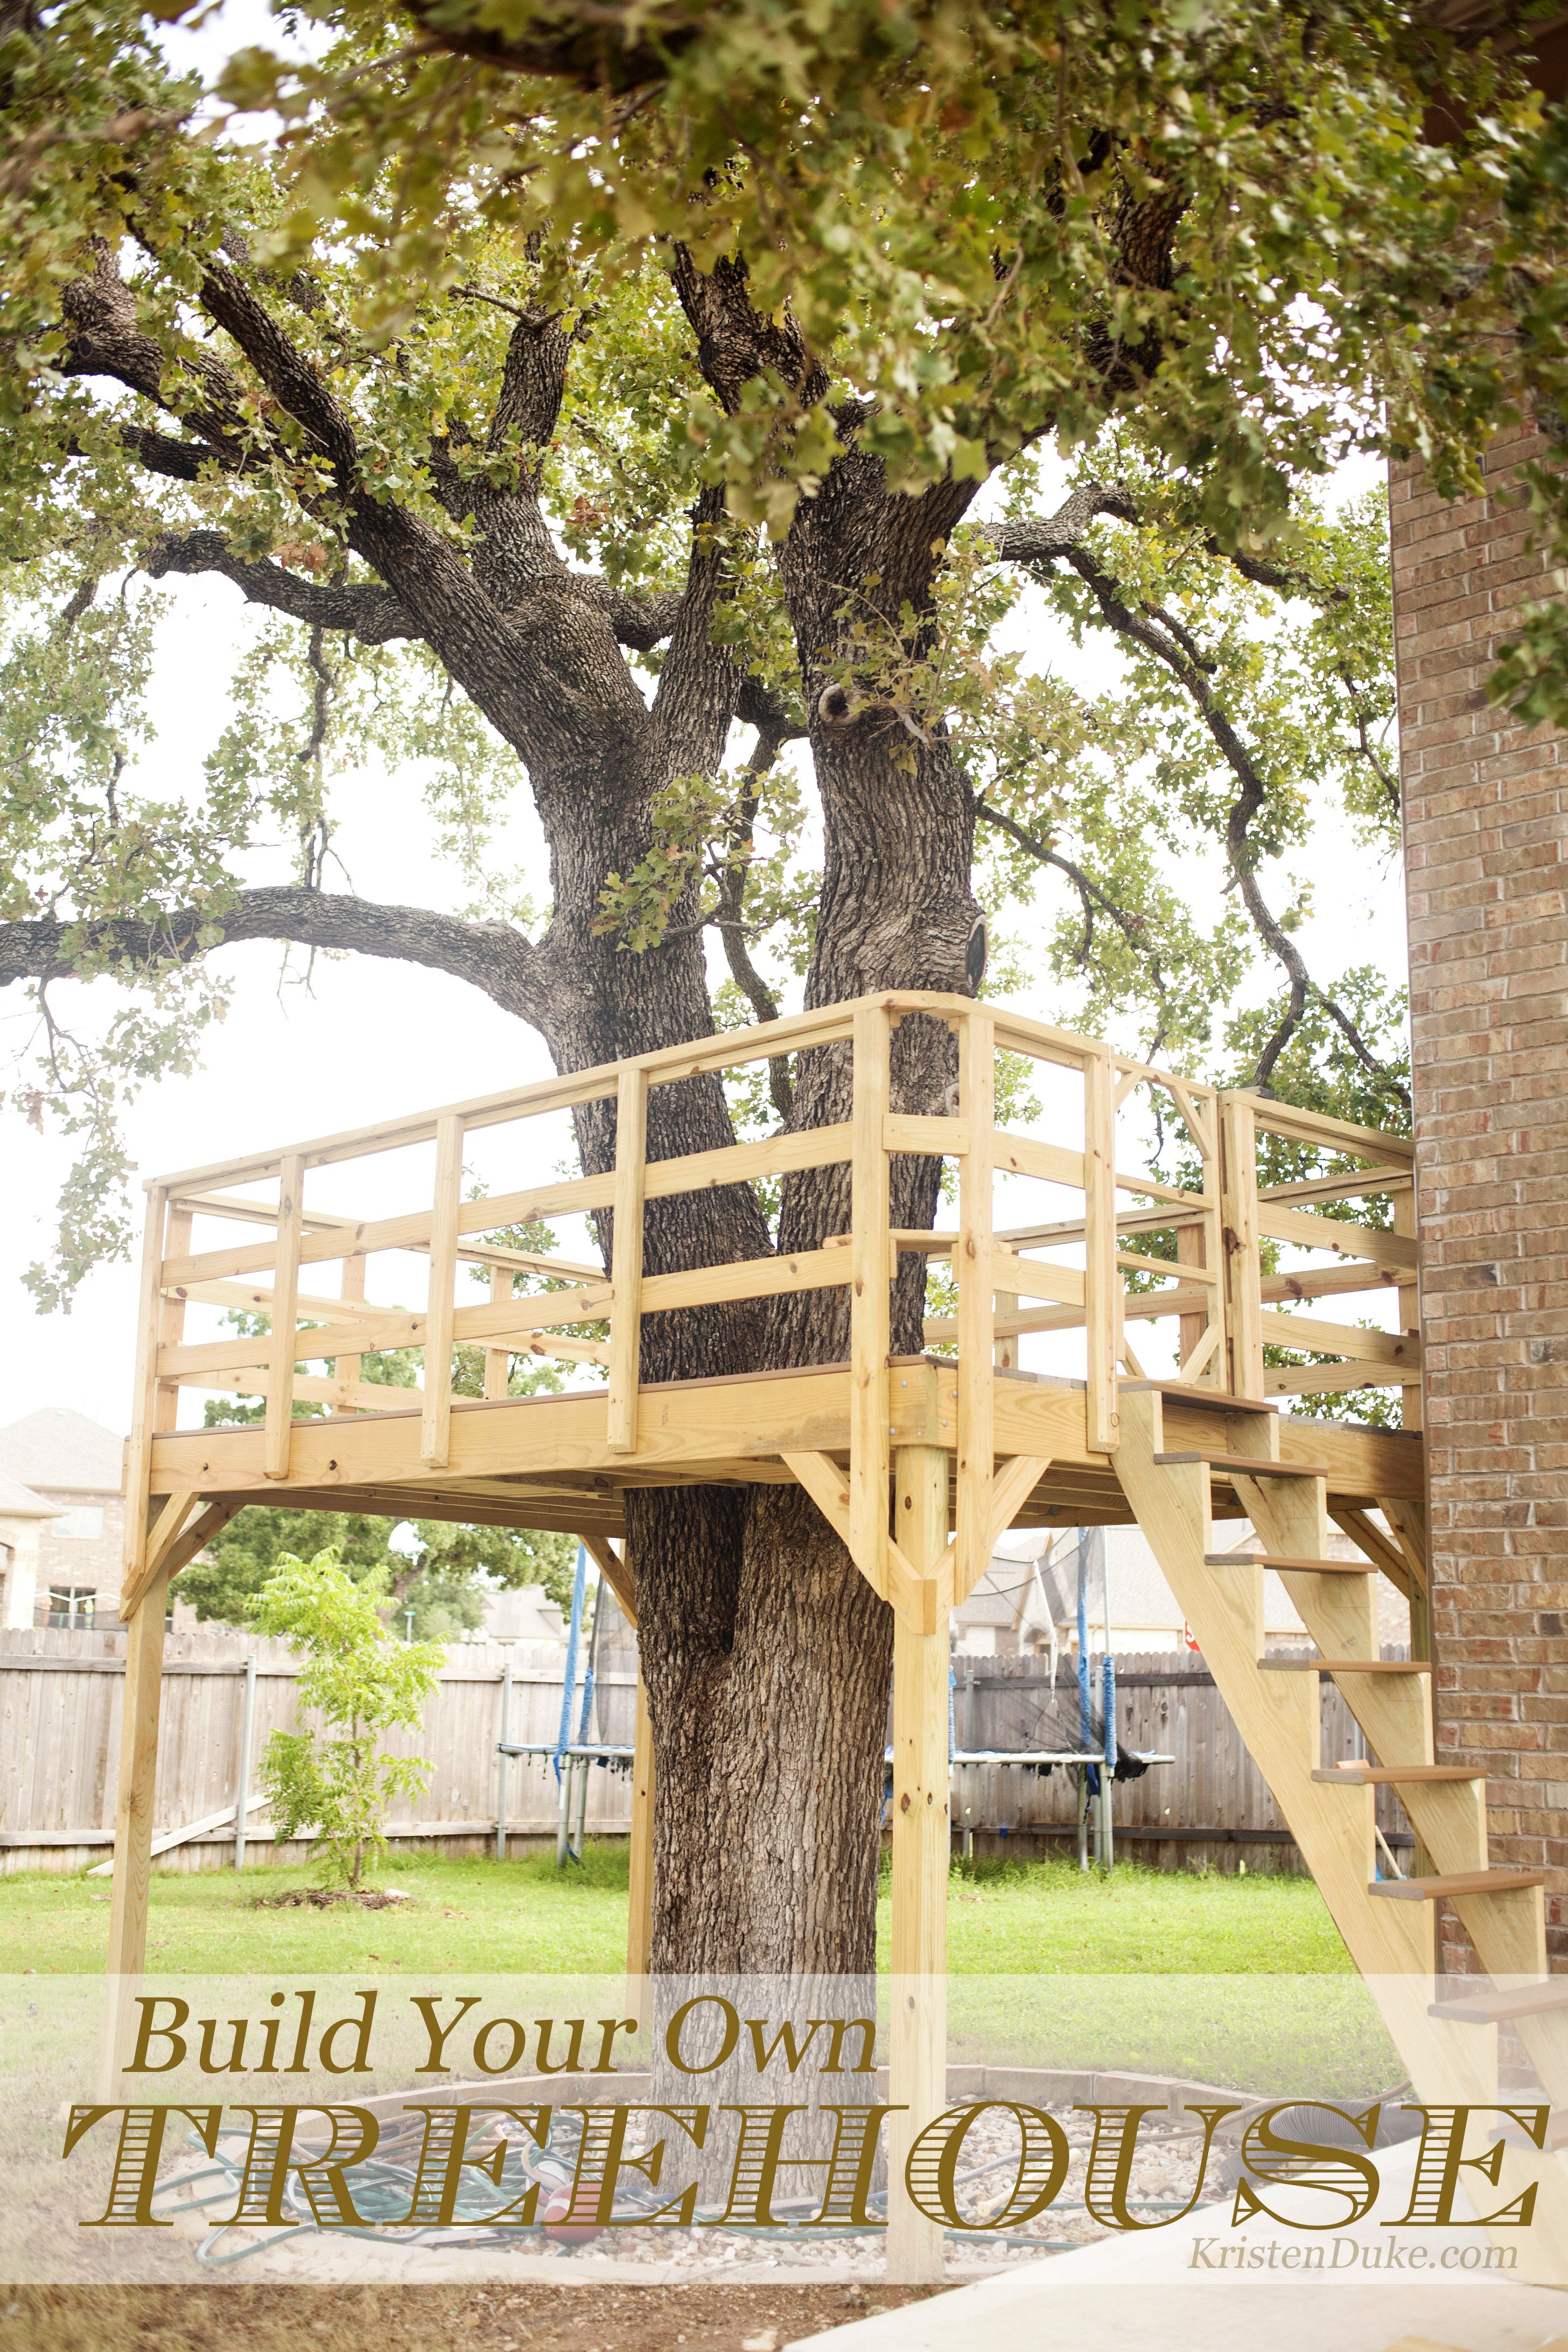 Build Your Own Treehouse Pinterest